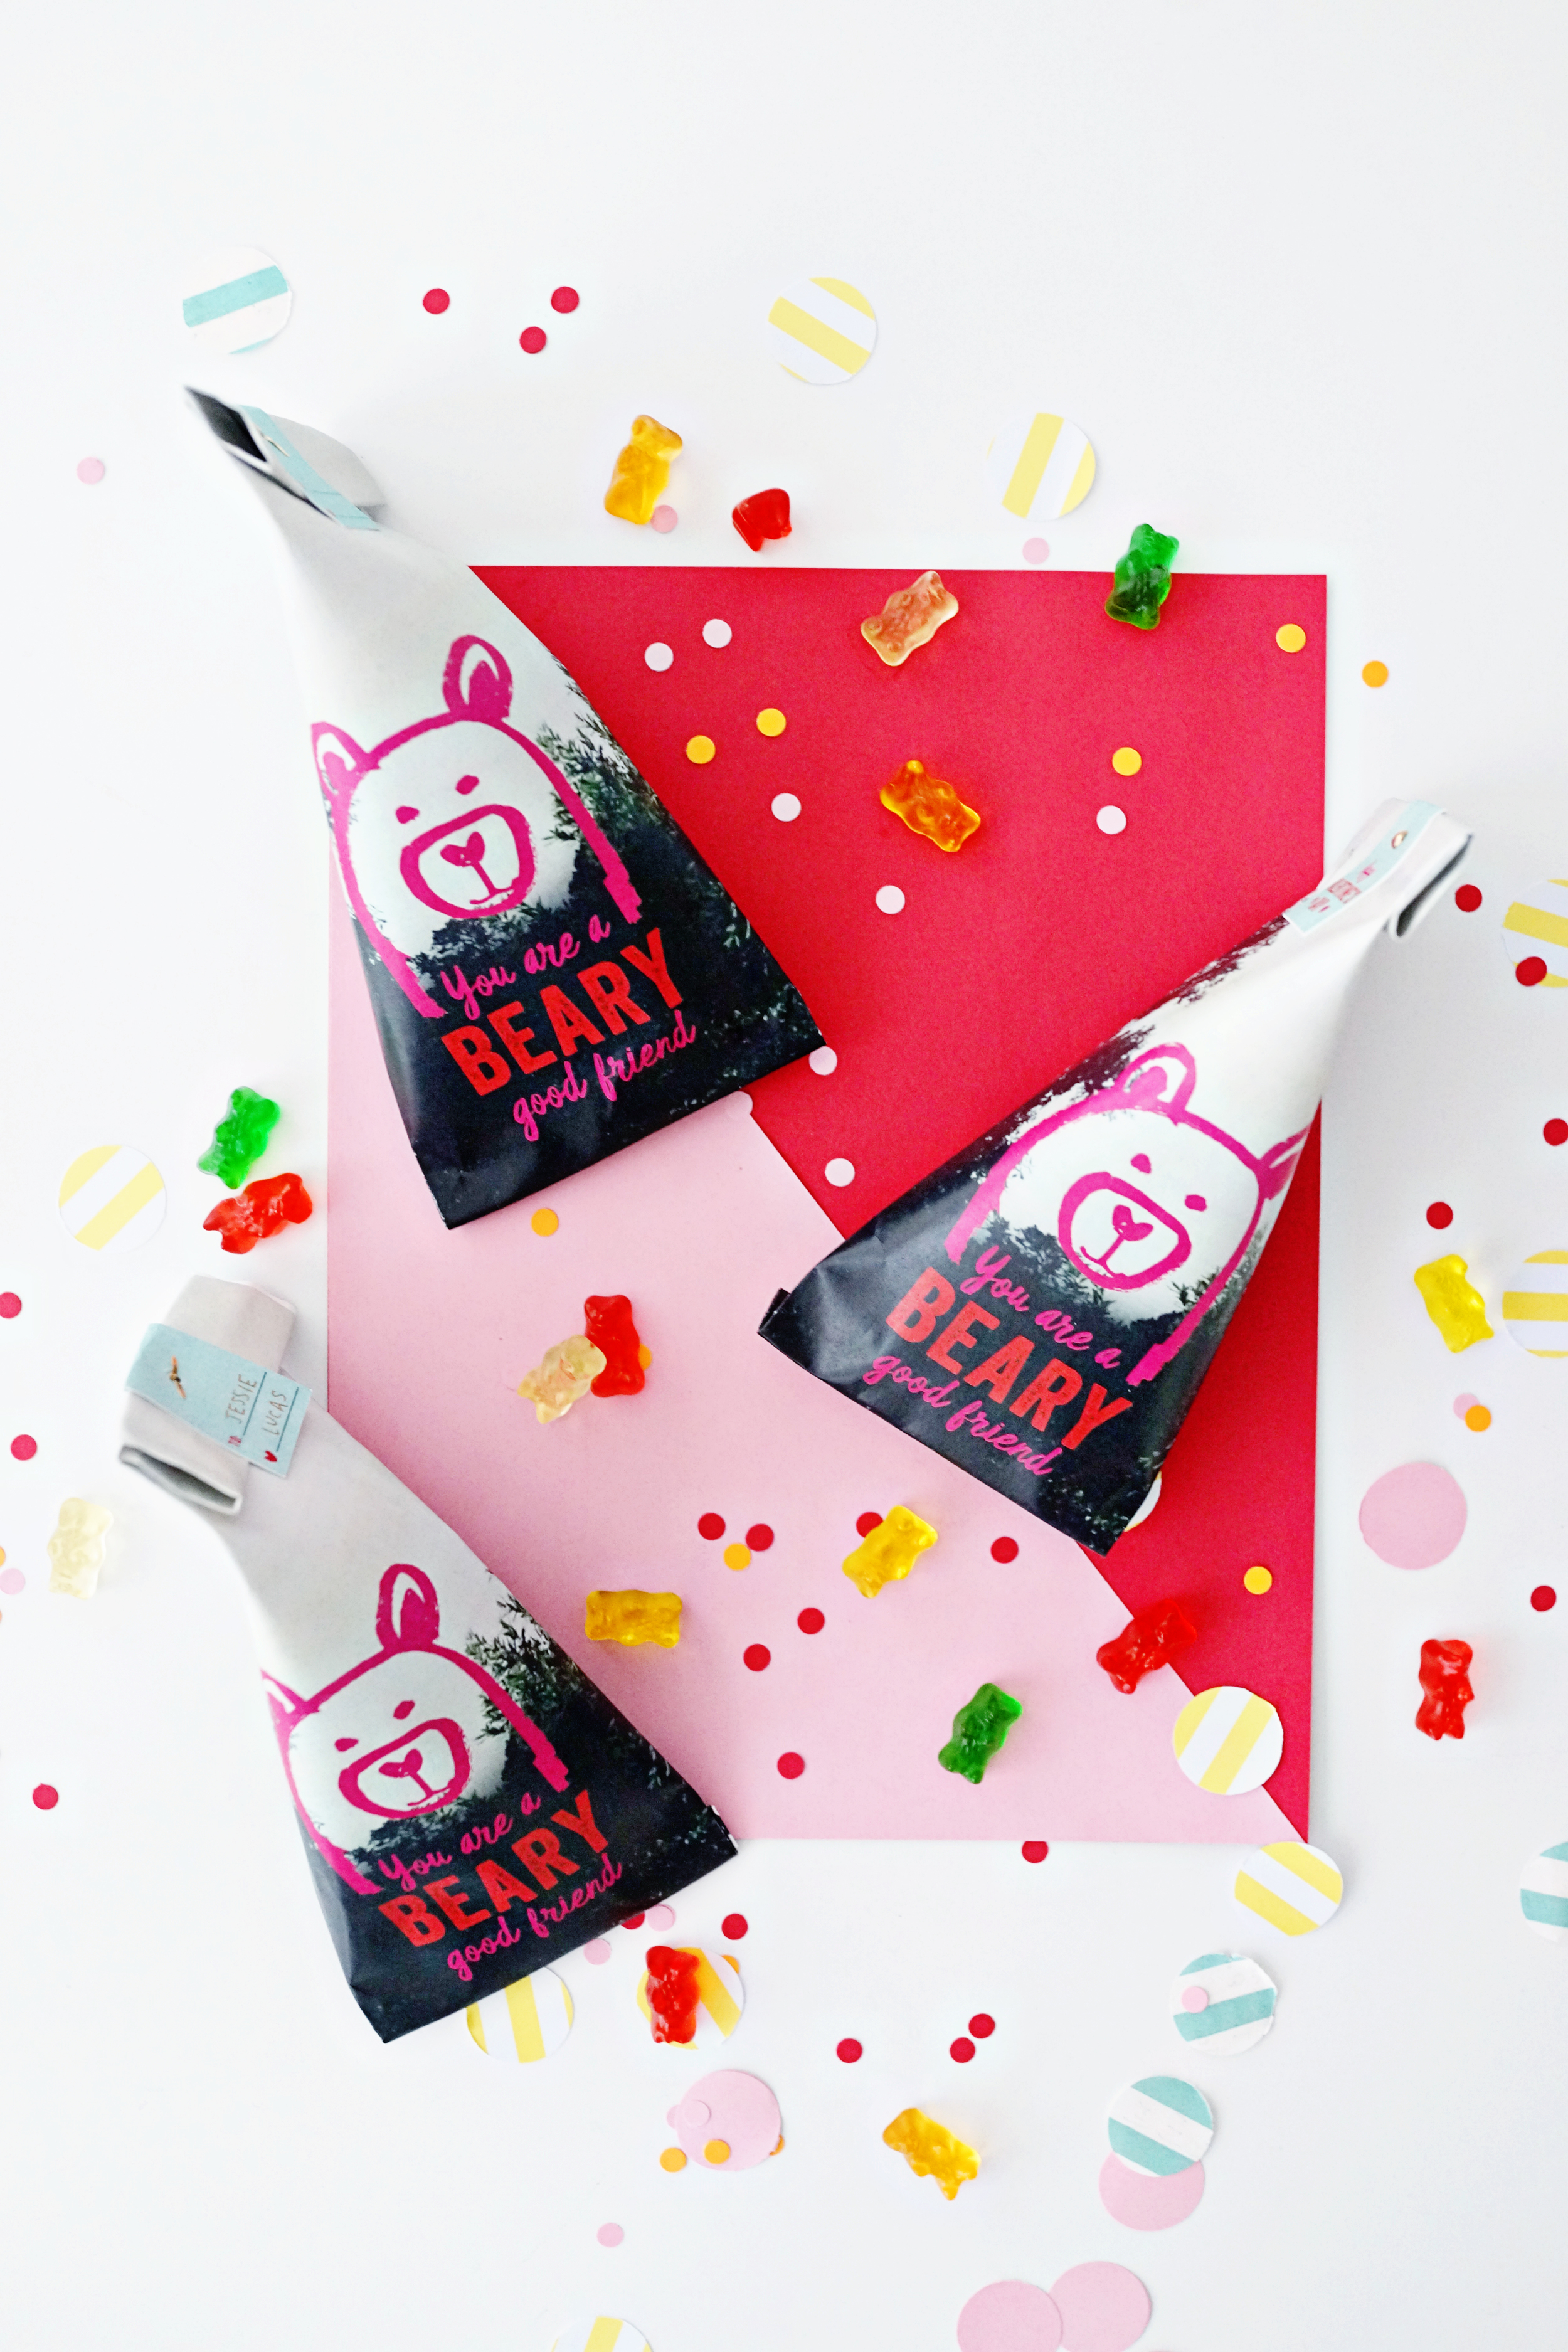 Valentine's Day Beary Favor Bags for Oh Happy Day / www.goodonpaperdesign.com/blog/2016/1/5/valentines-day-beary-favor-bags-for-oh-happy-day  /  @good_on_paper